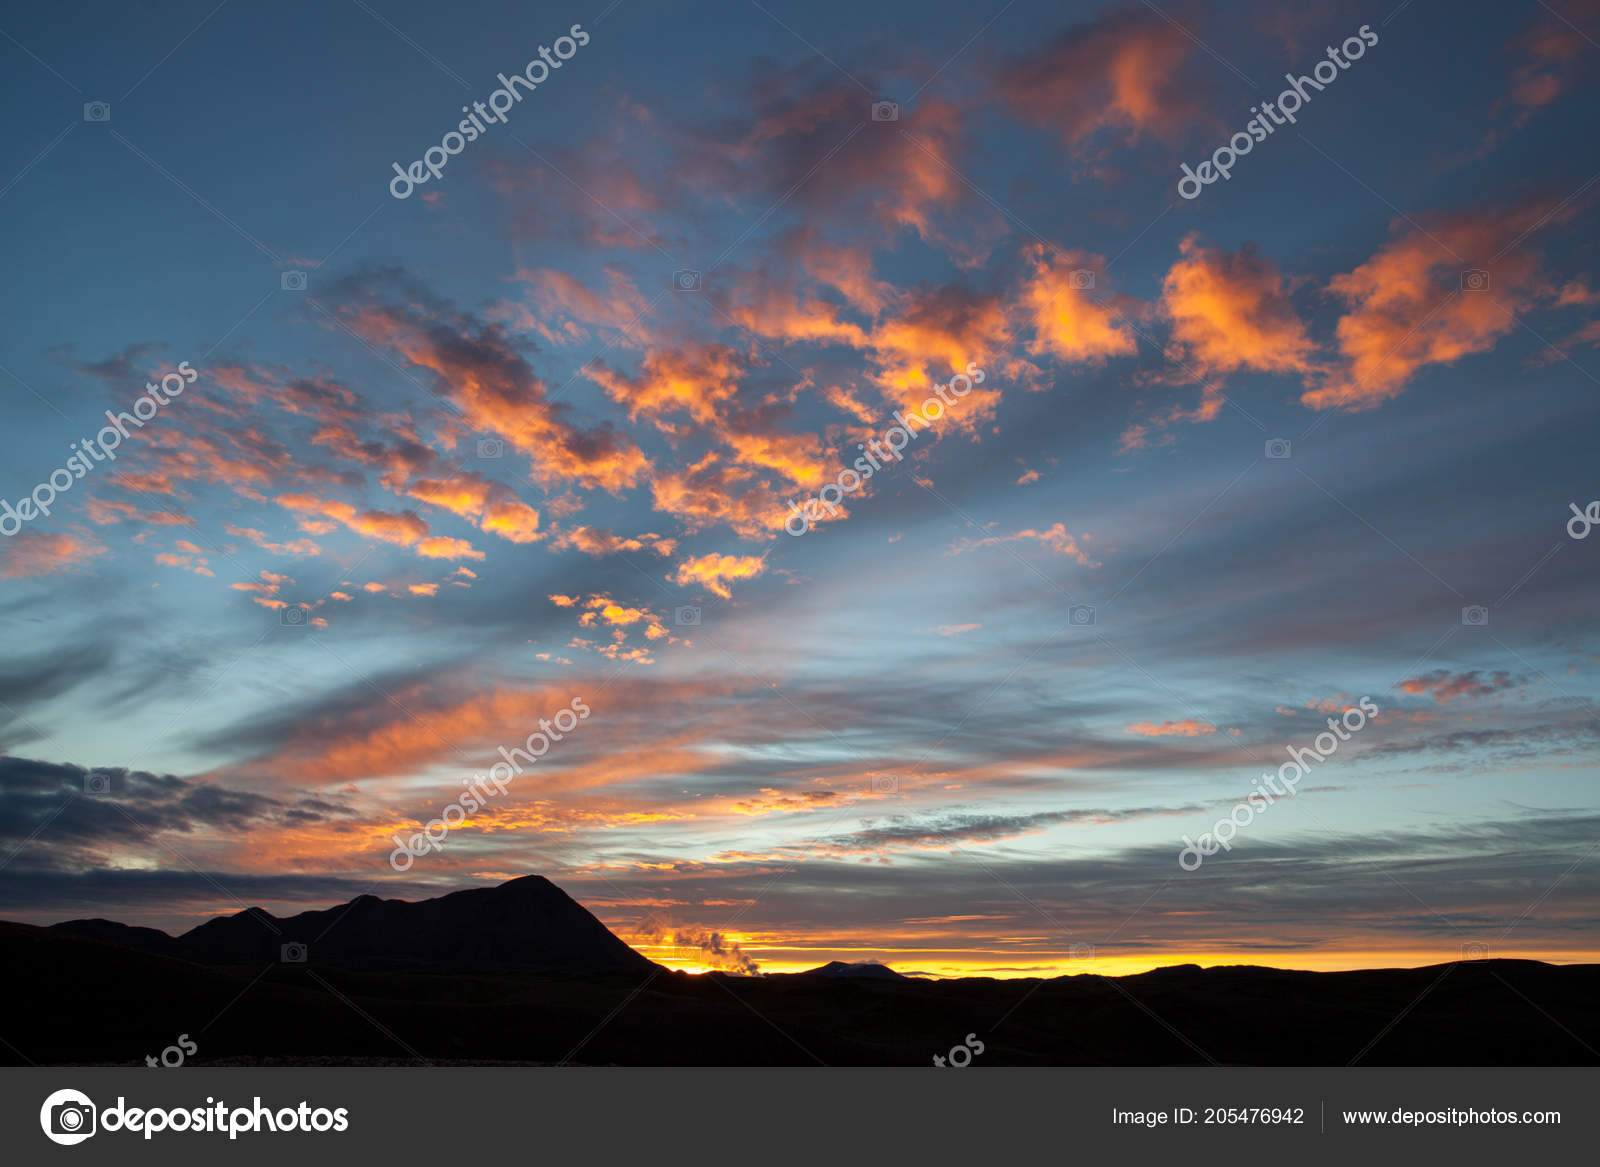 Midnight Sunset In Iceland Mountains Bright Orange Clouds On